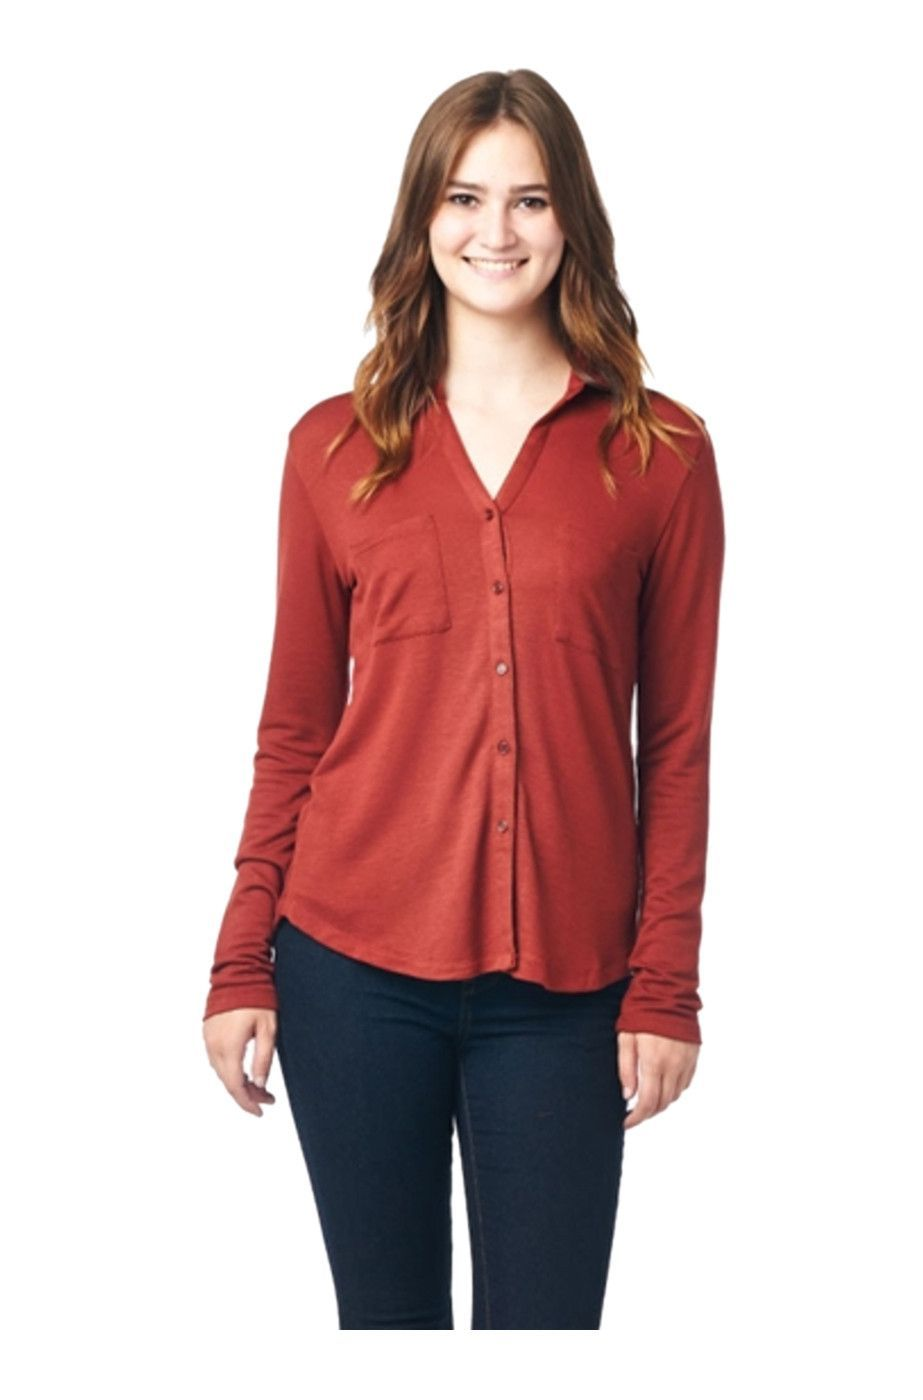 f94fbe0d65b1b Long Sleeve Button Down French Terry Blouse Shirt w/ Cuff Bands. Find this  Pin and more on Bodilove Trendy Clothes ...